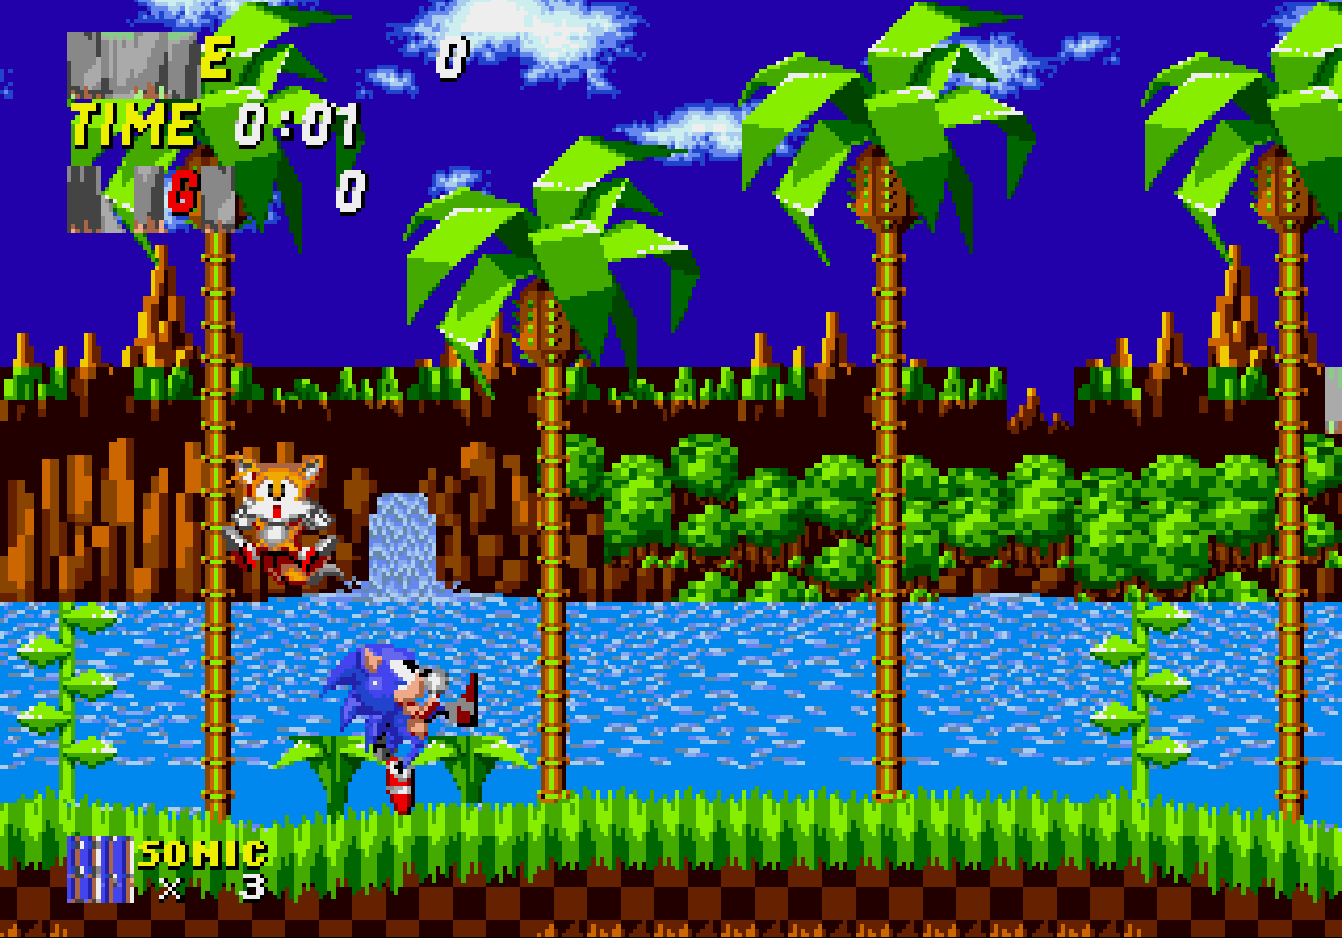 Sonic the Hedgehog 2 (прототип Nick Arcade)